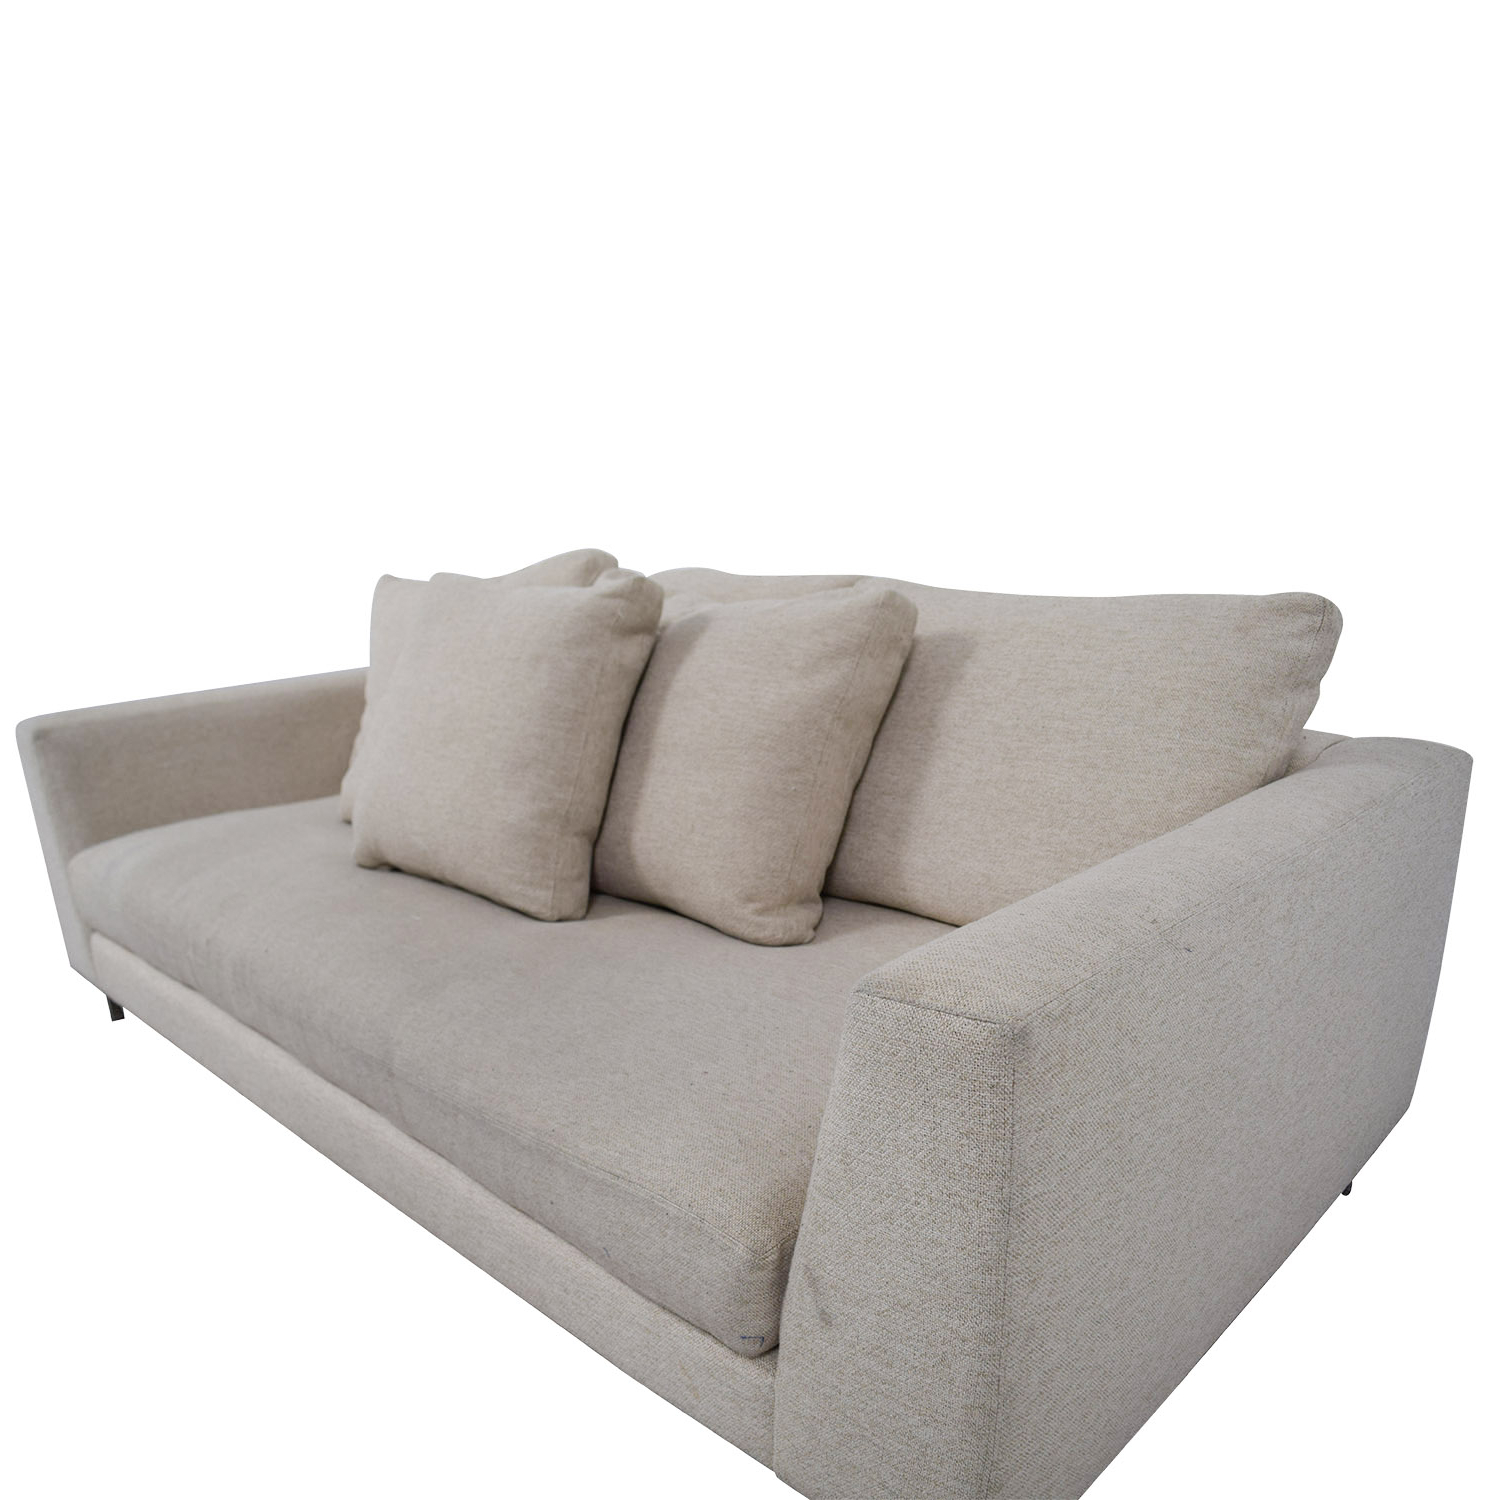 [%89% Off – Room & Board Room & Board Hayes Beige Single Throughout Newest Beige Sofas beige Sofas With Regard To Popular 89% Off – Room & Board Room & Board Hayes Beige Single most Current Beige Sofas Throughout 89% Off – Room & Board Room & Board Hayes Beige Single widely Used 89% Off – Room & Board Room & Board Hayes Beige Single With Beige Sofas%] (View 8 of 20)